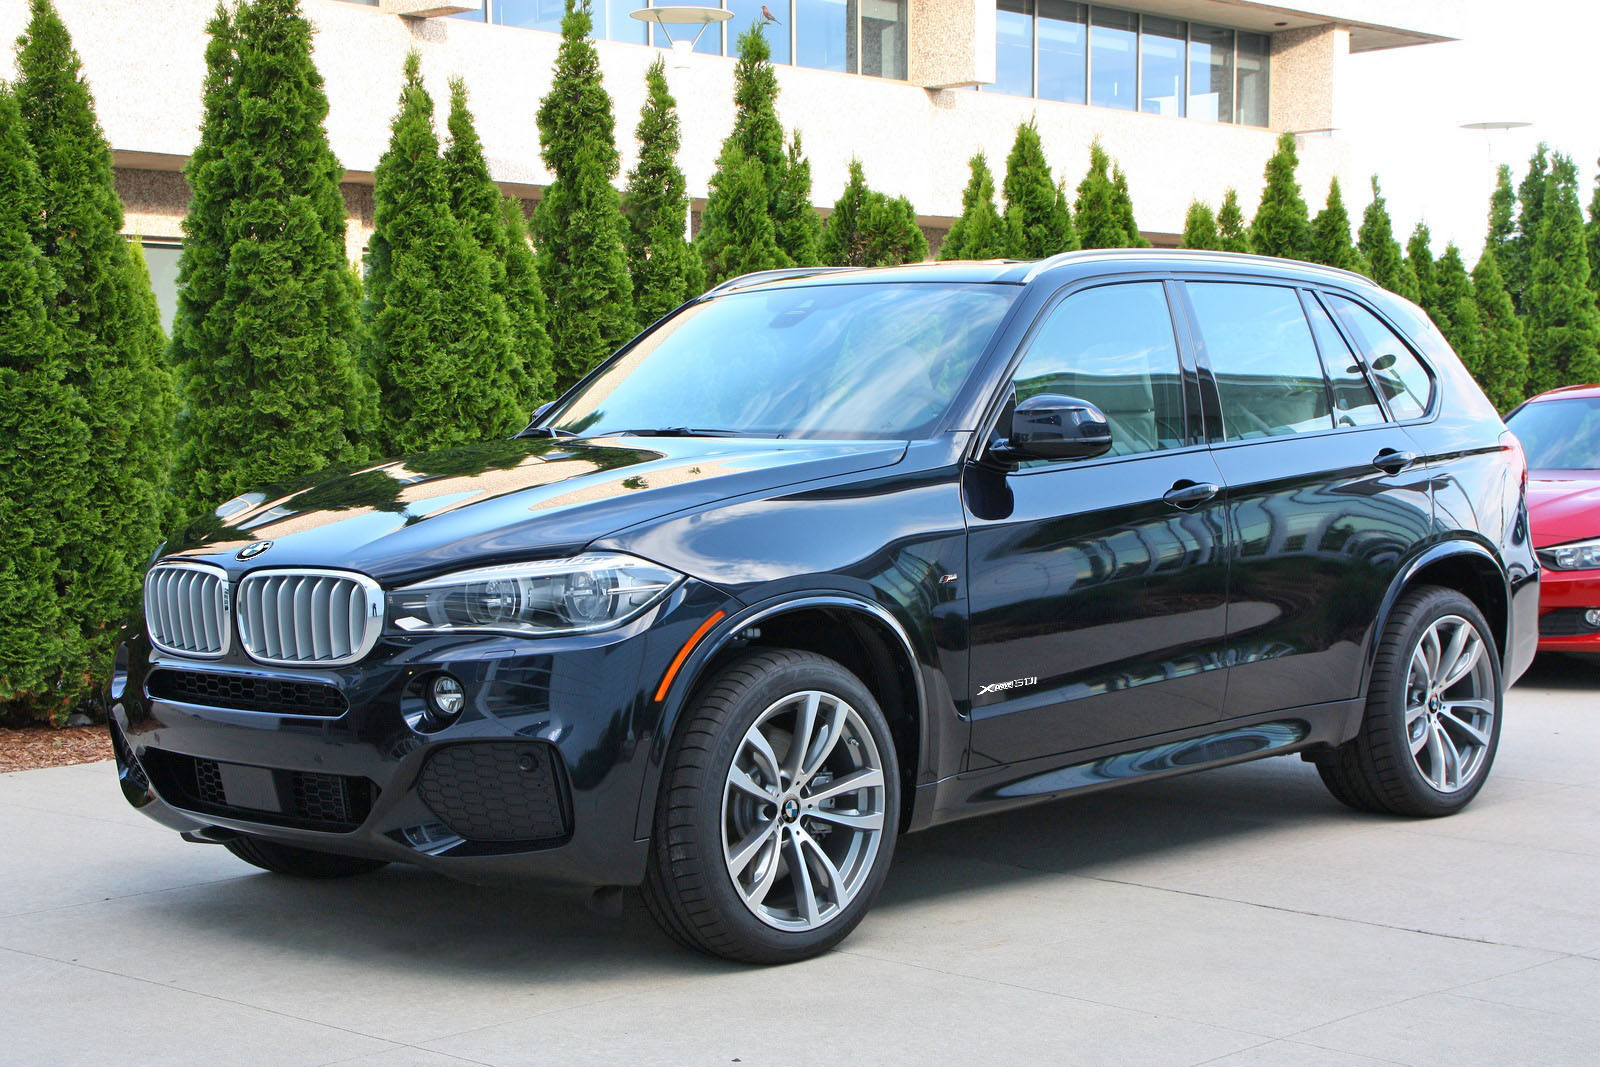 f15 2014 bmw x5 50i m sport uncovered best of car talk site find best tecnologies tips review. Black Bedroom Furniture Sets. Home Design Ideas